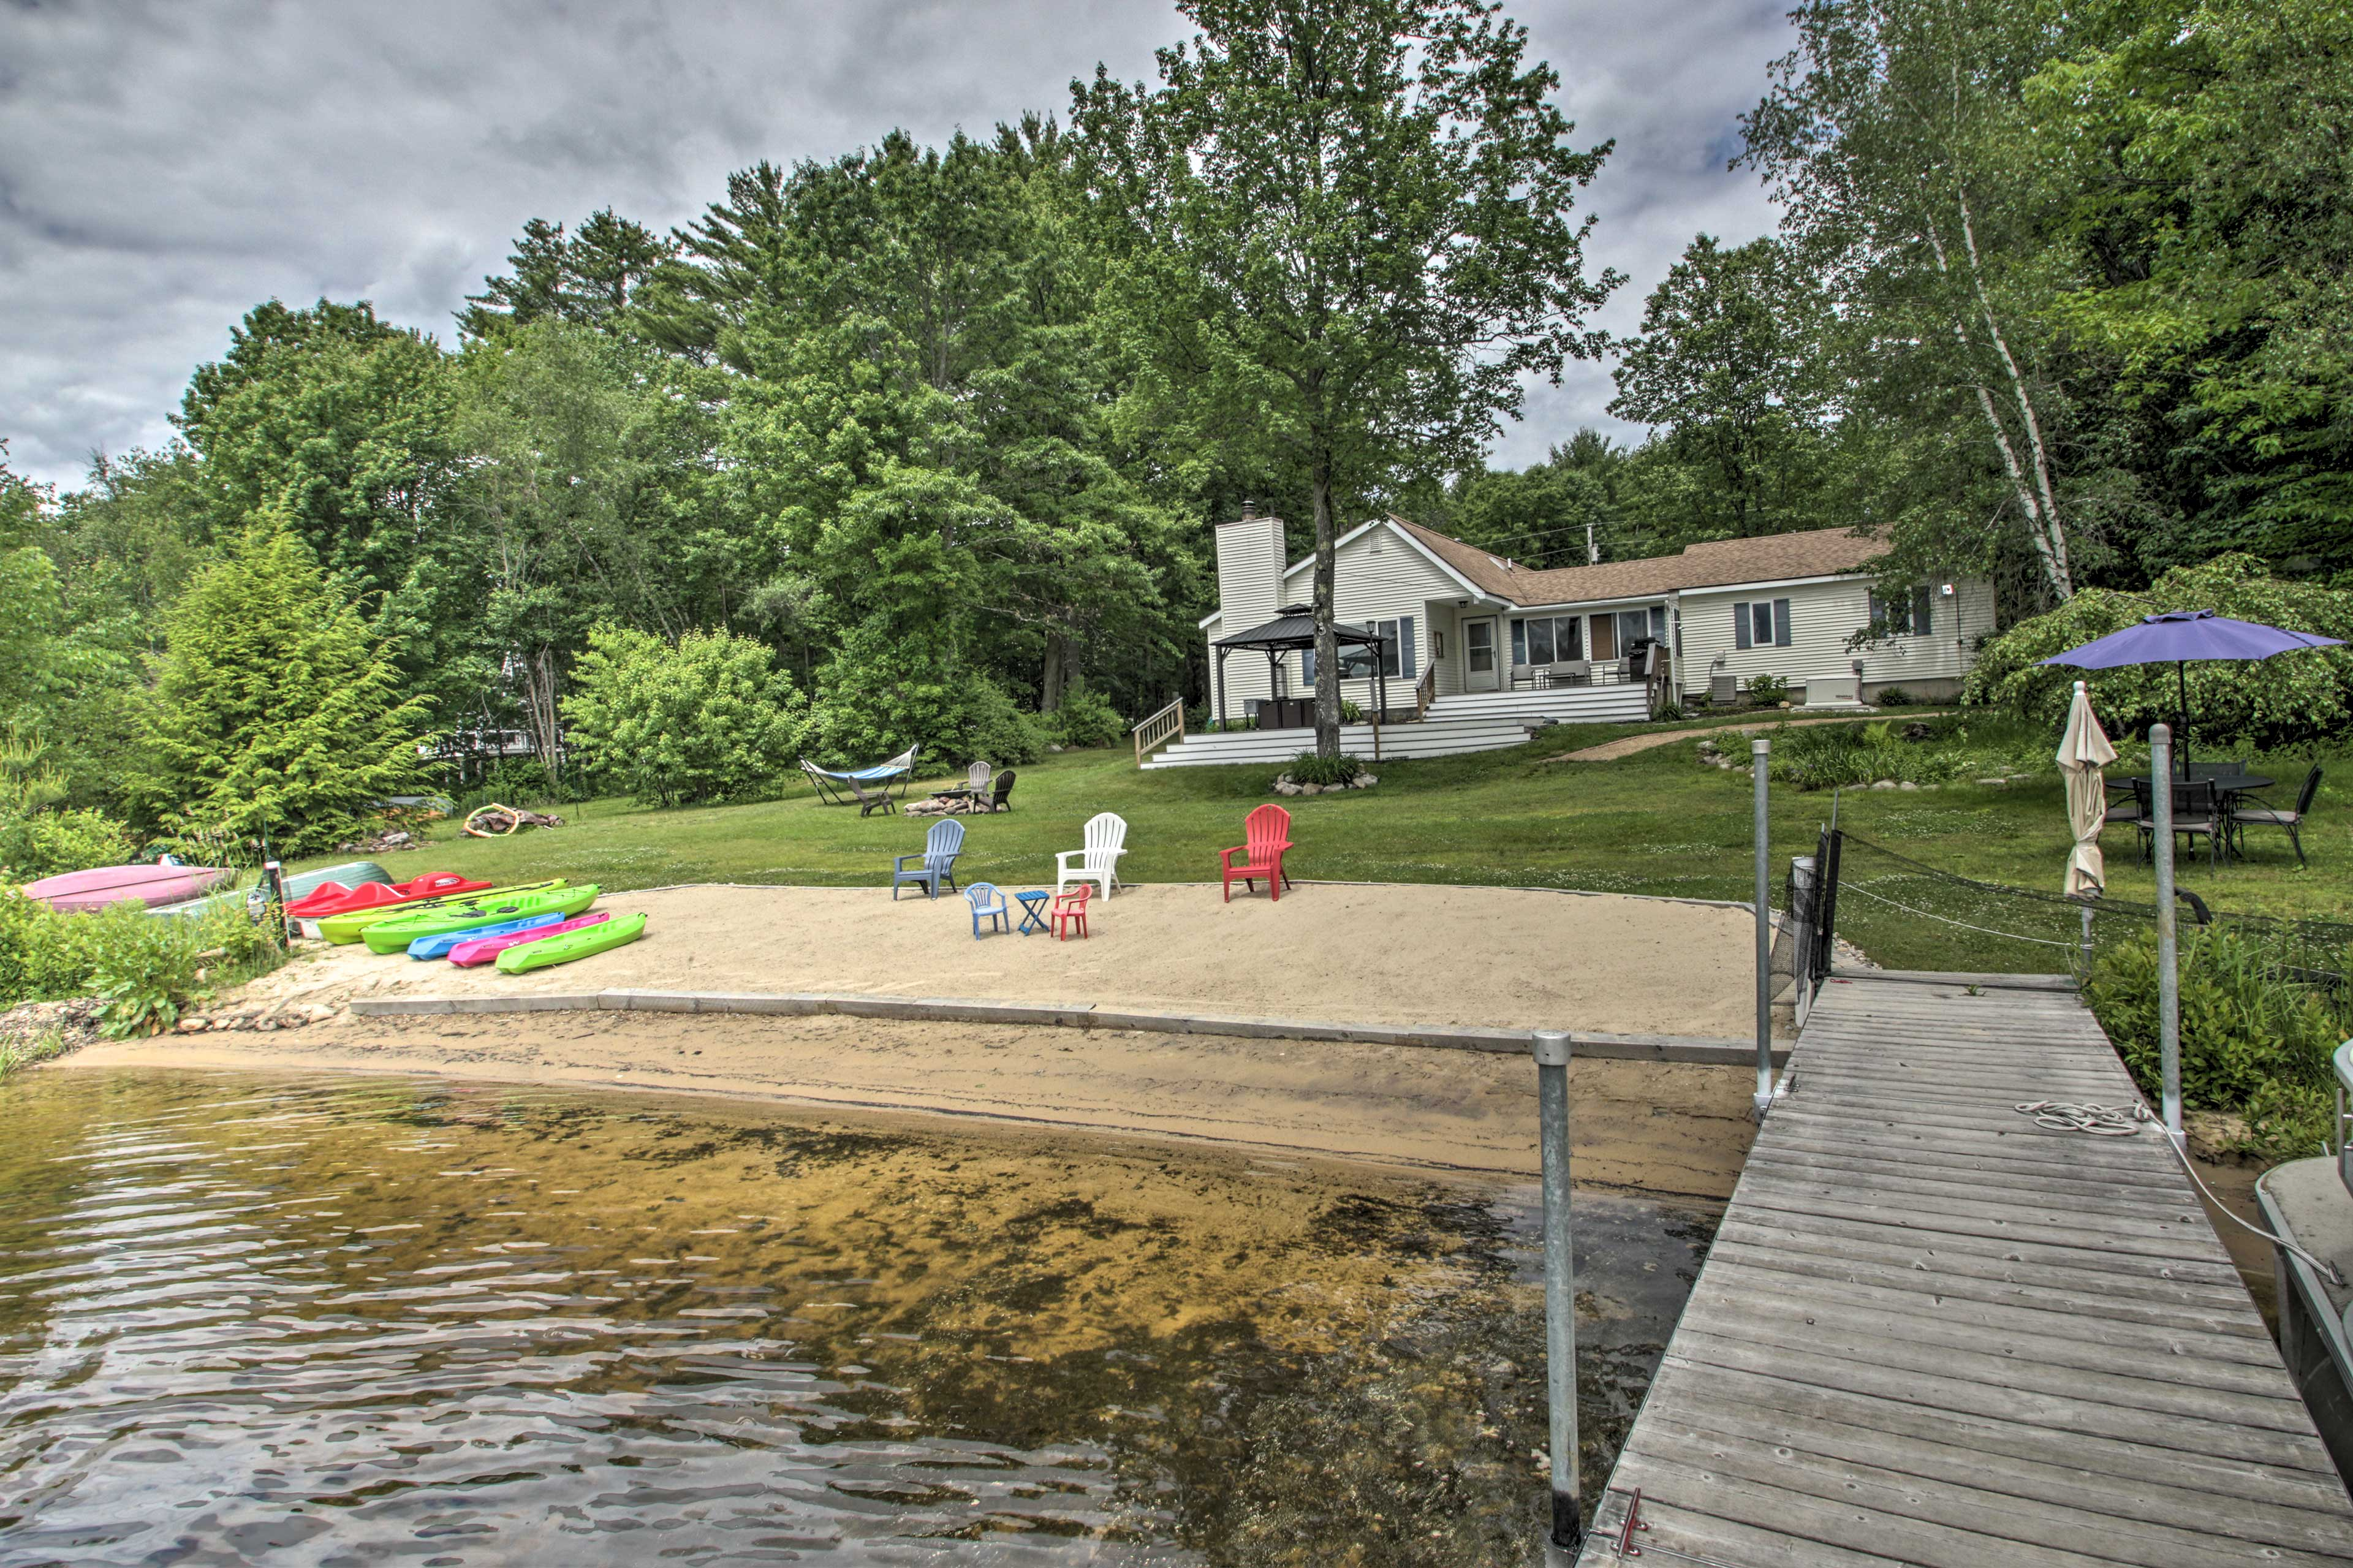 Lounge on the beach or take a boat out and launch from the dock!